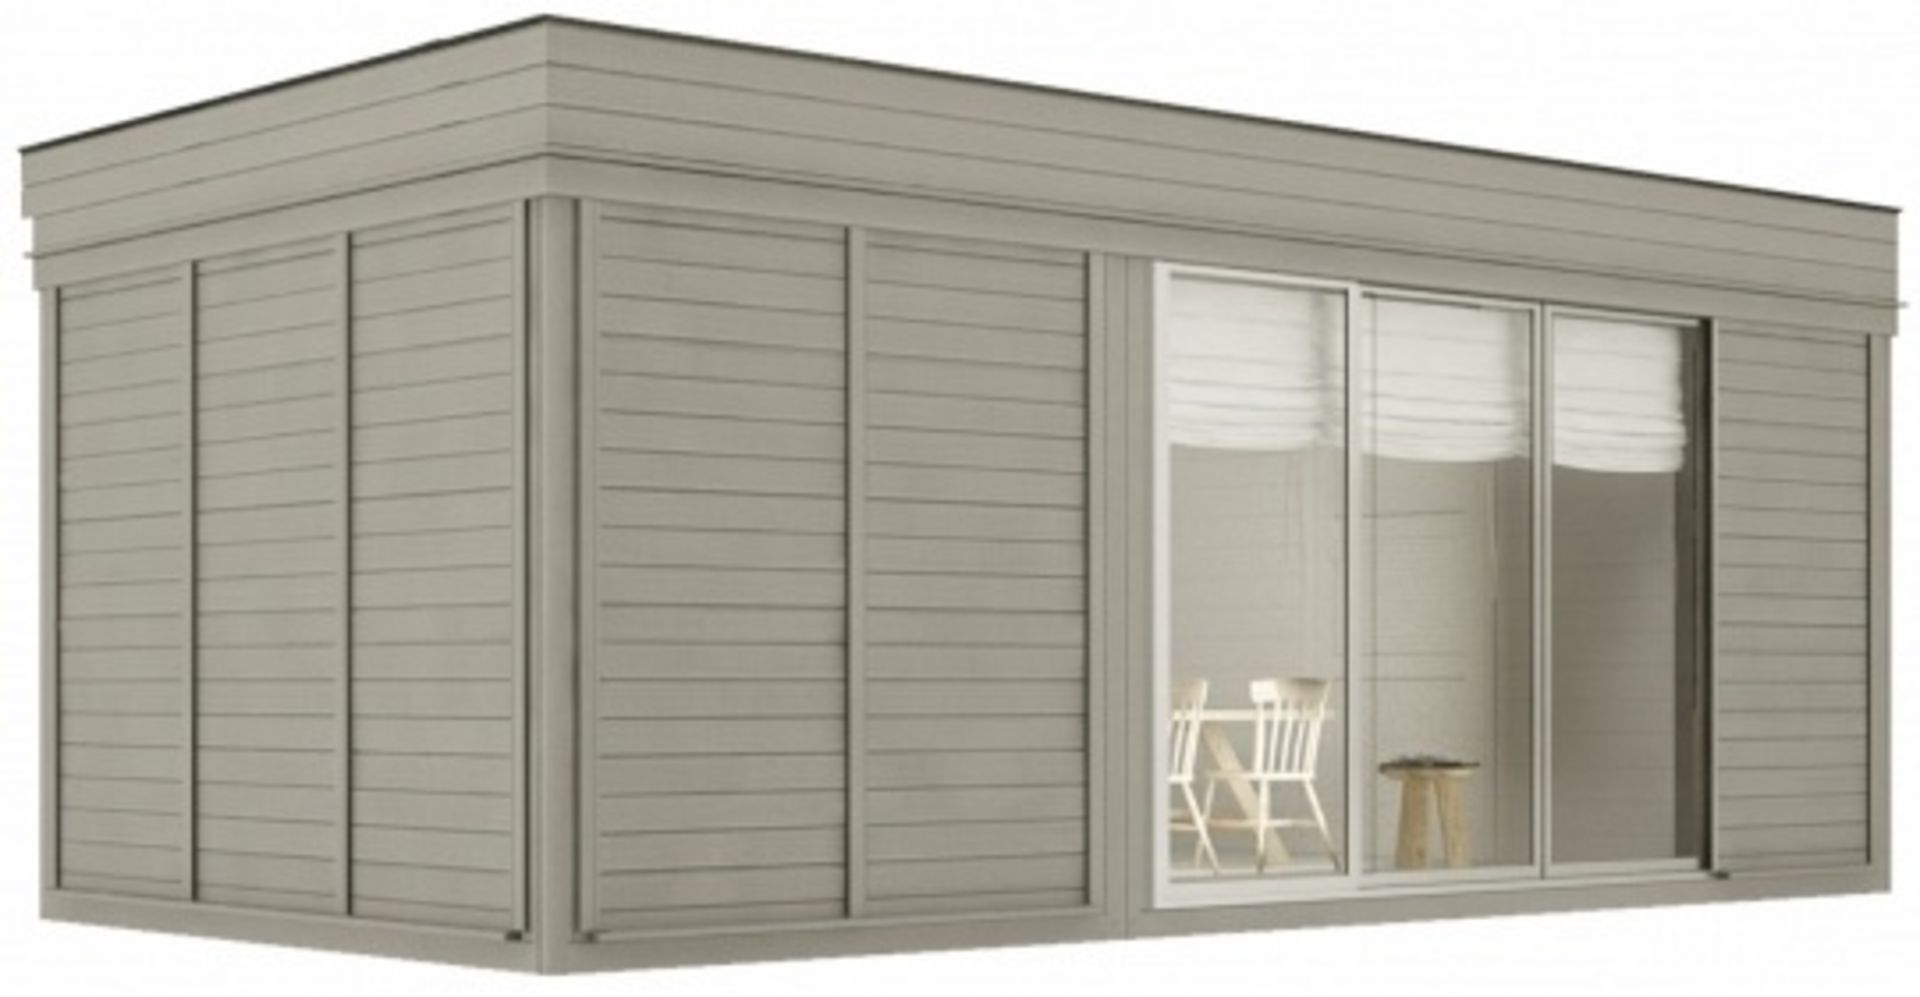 Lot 18030 - V Brand New Huge Luxury 3m x 6m Sauna Cube With Lounge Room - Sauna Benches - 9KW Electric Harvia